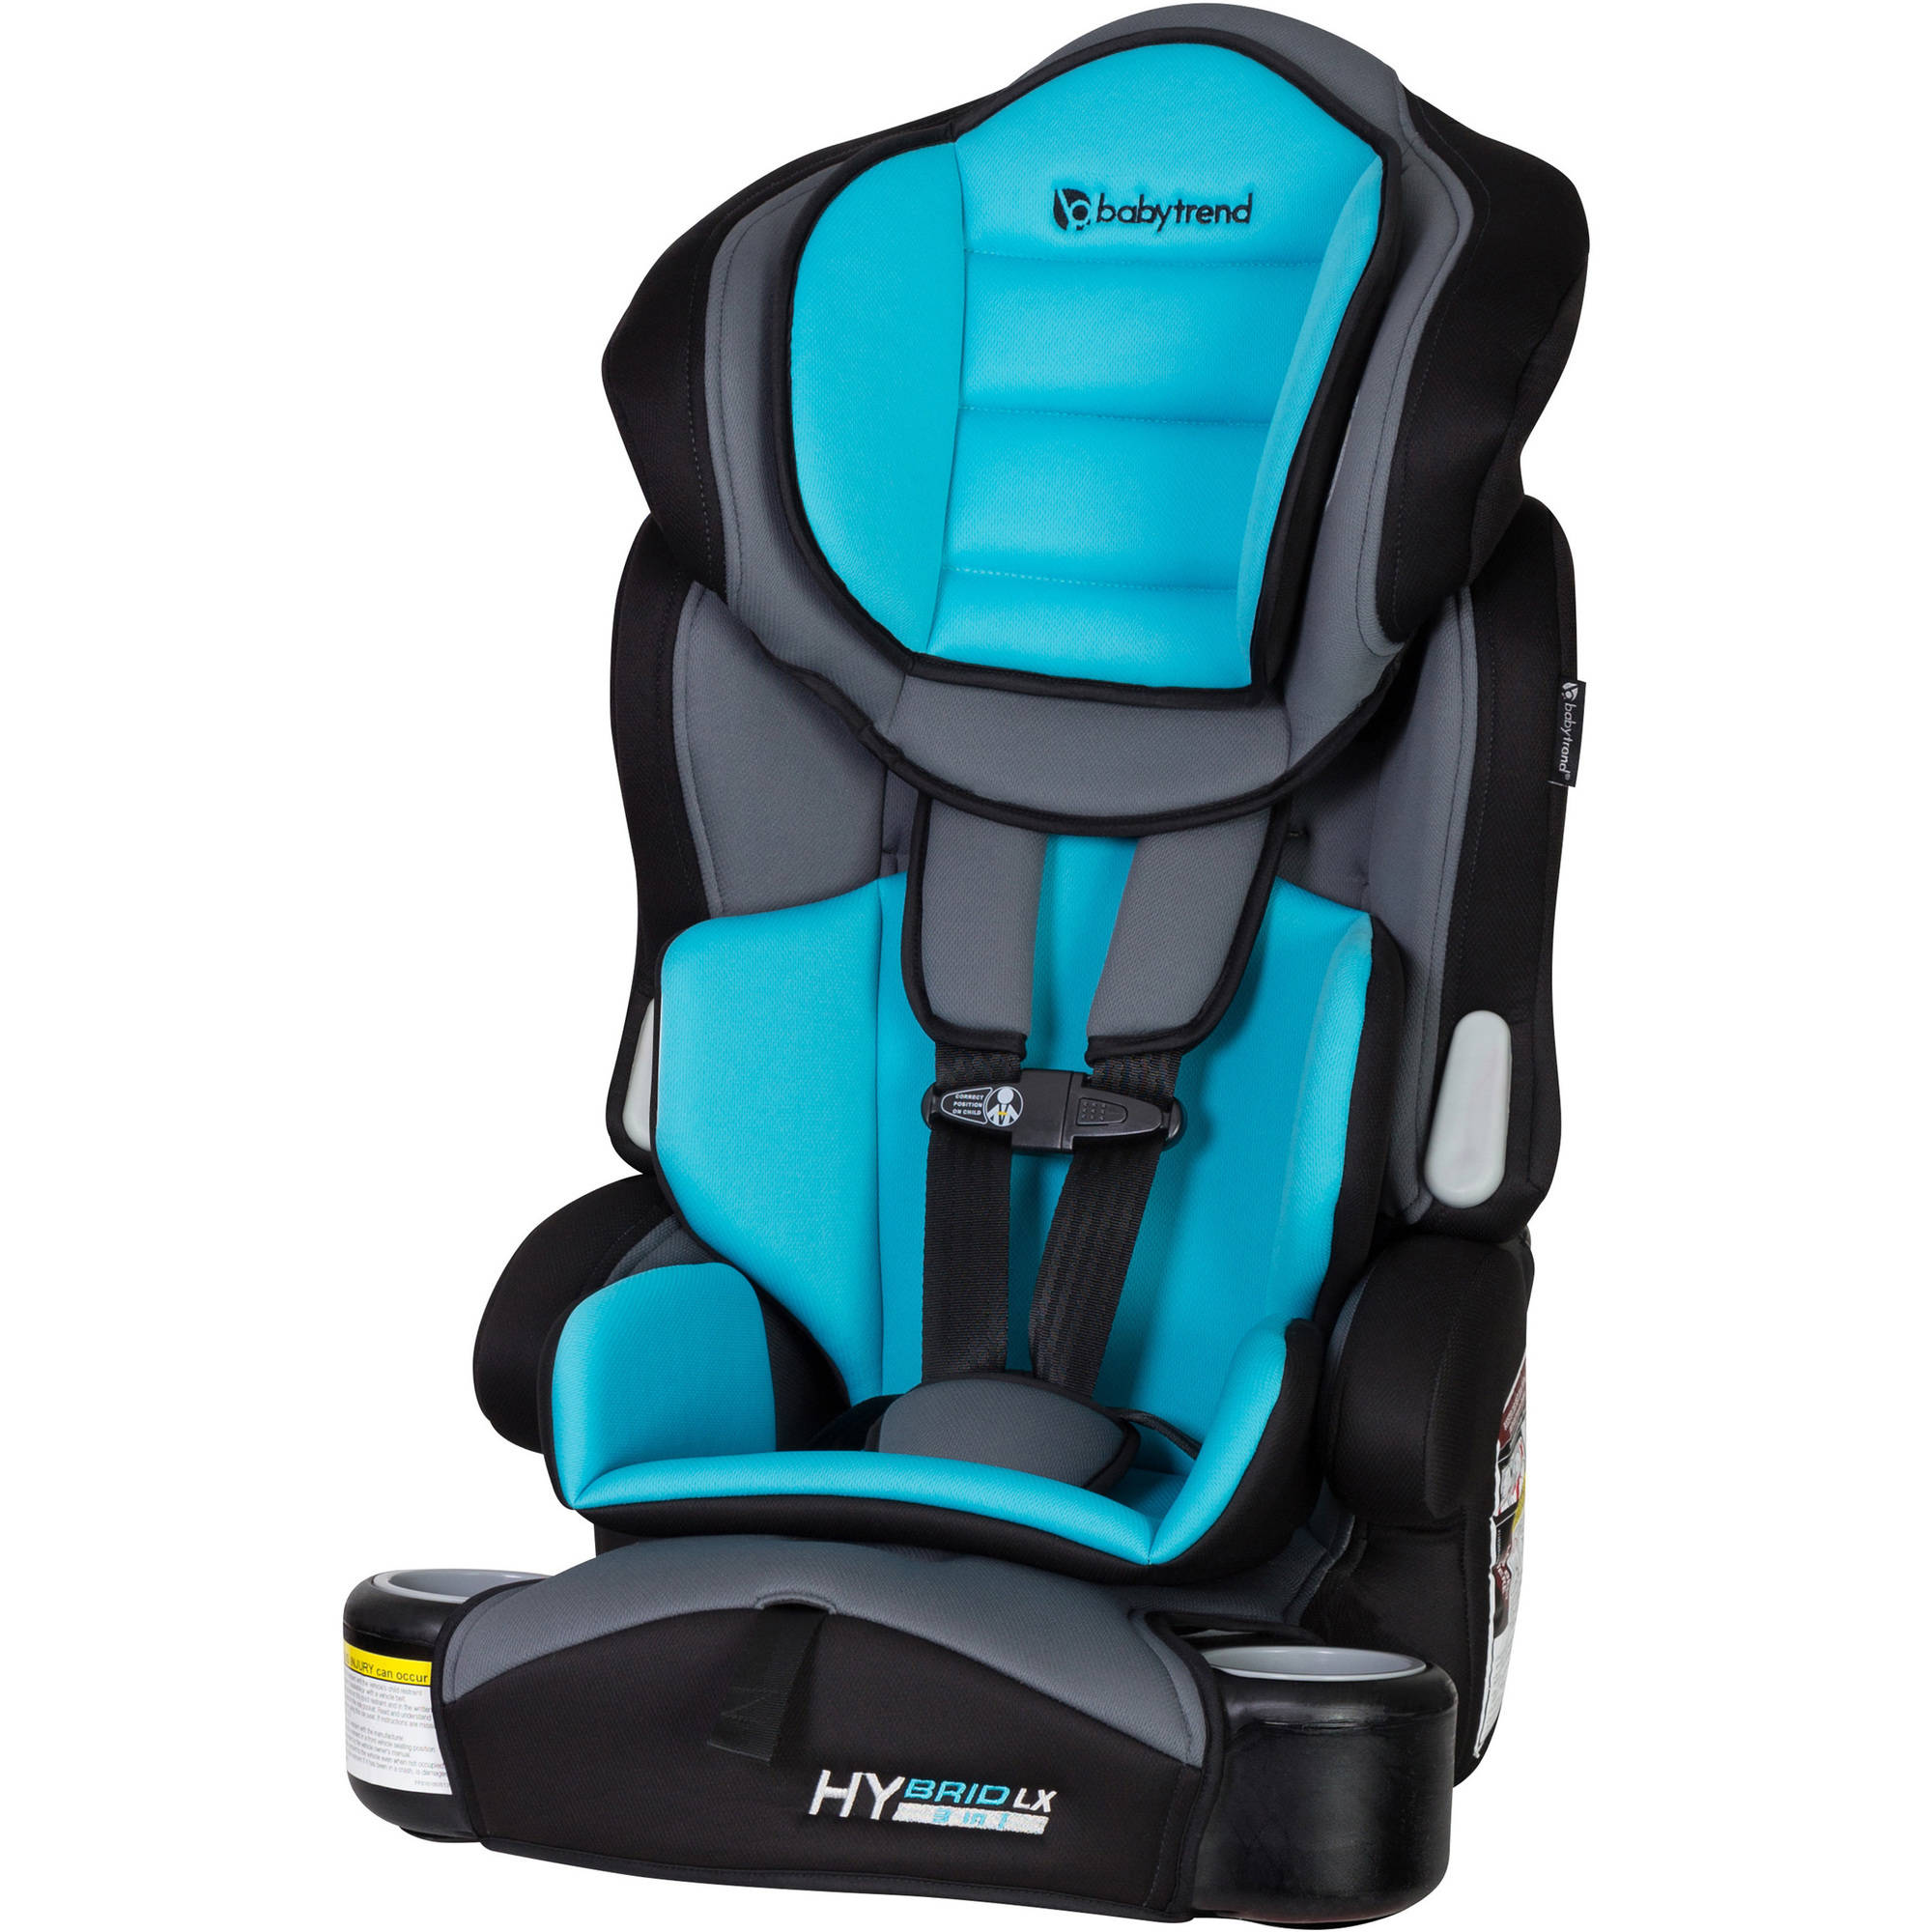 Baby Trend Hybrid LX 3-in-1 Harness Booster Car Seat, Capri Breeze